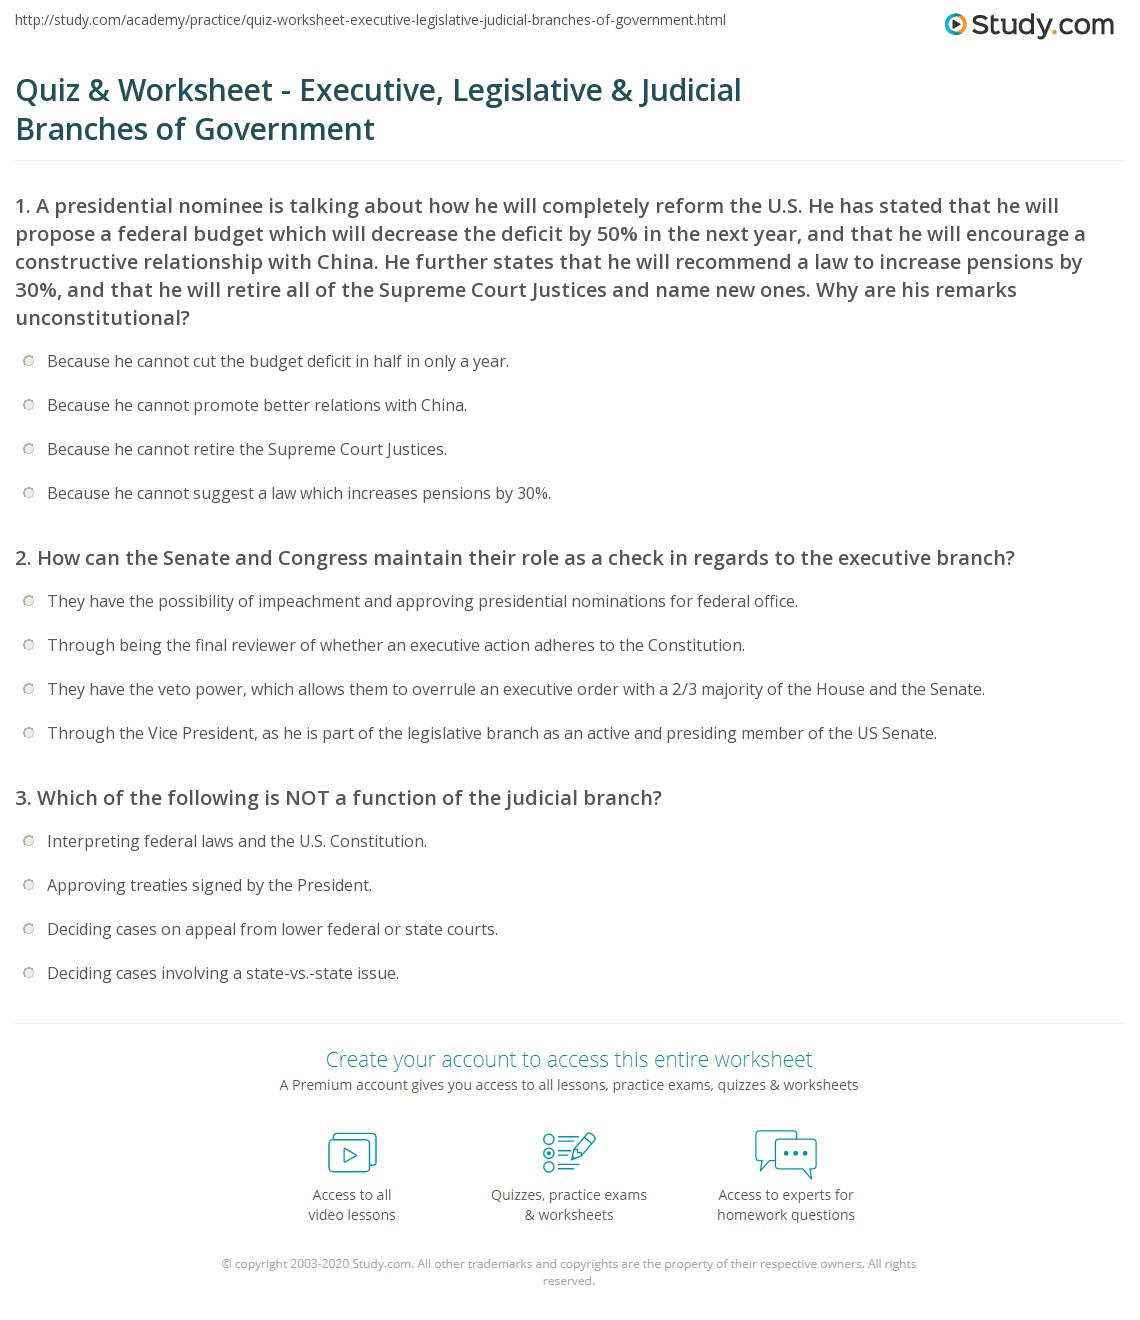 Worksheet Branches Of Government Worksheet quiz worksheet executive legislative judicial branches of print the 3 government worksheet